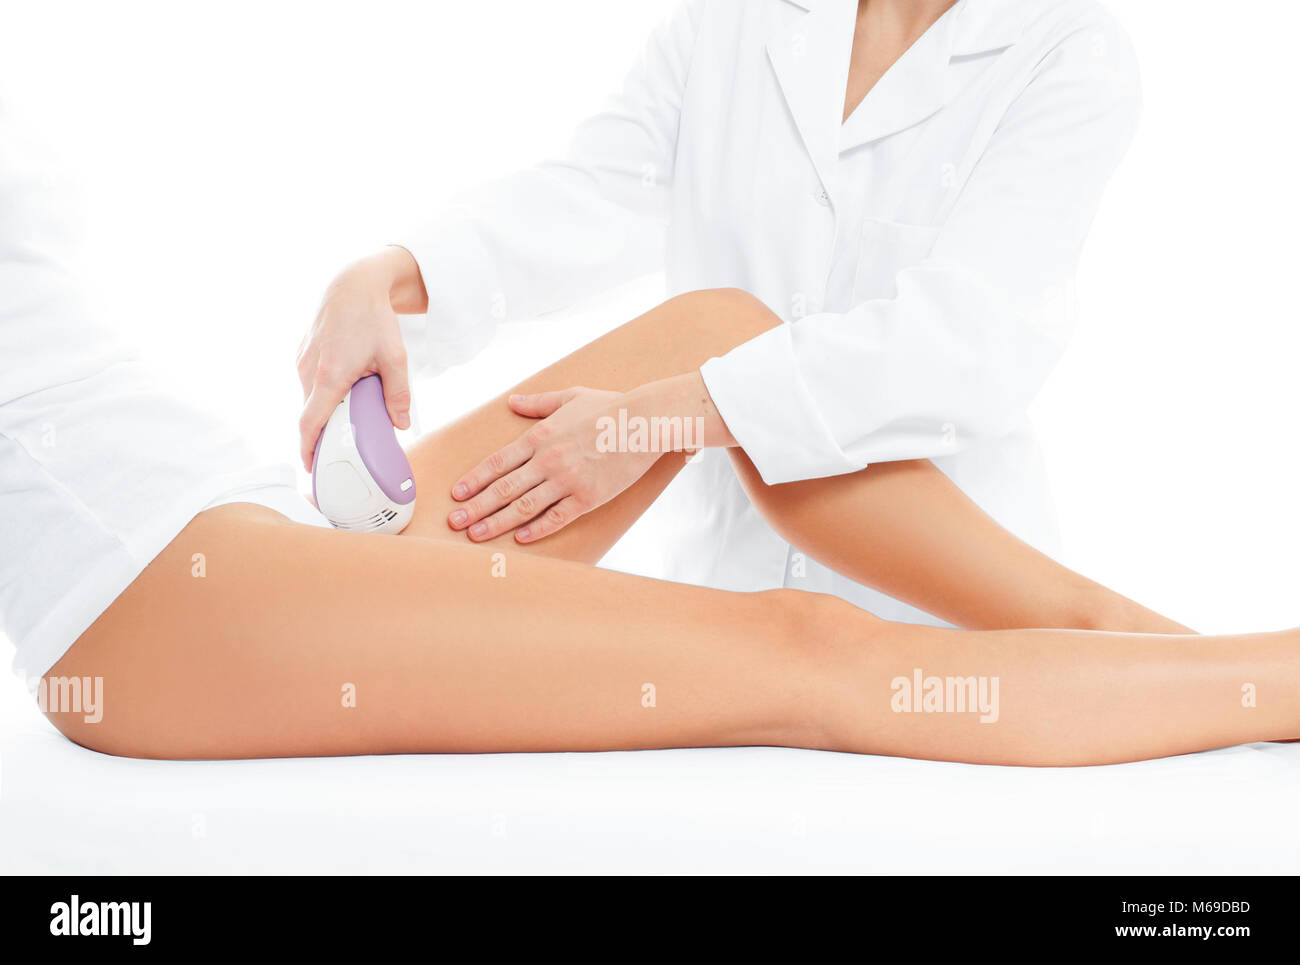 Depilation. Beauty.  Spa. Woman on laser hair removal treatments thighs and bikini area - Stock Image